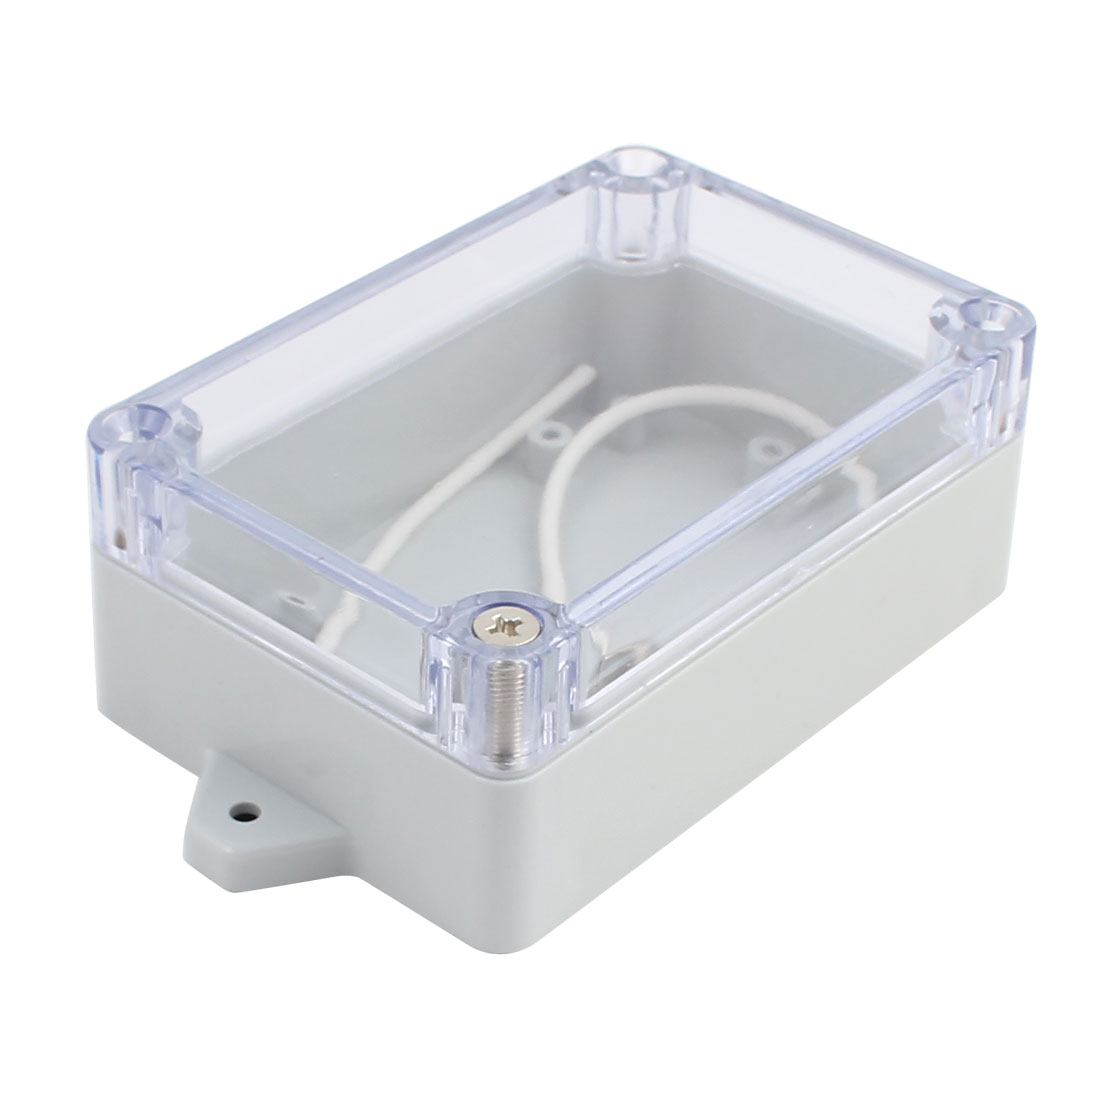 100x68x40mm Screw Mount ABS Junction Box Enclosure w PC Clear Cover